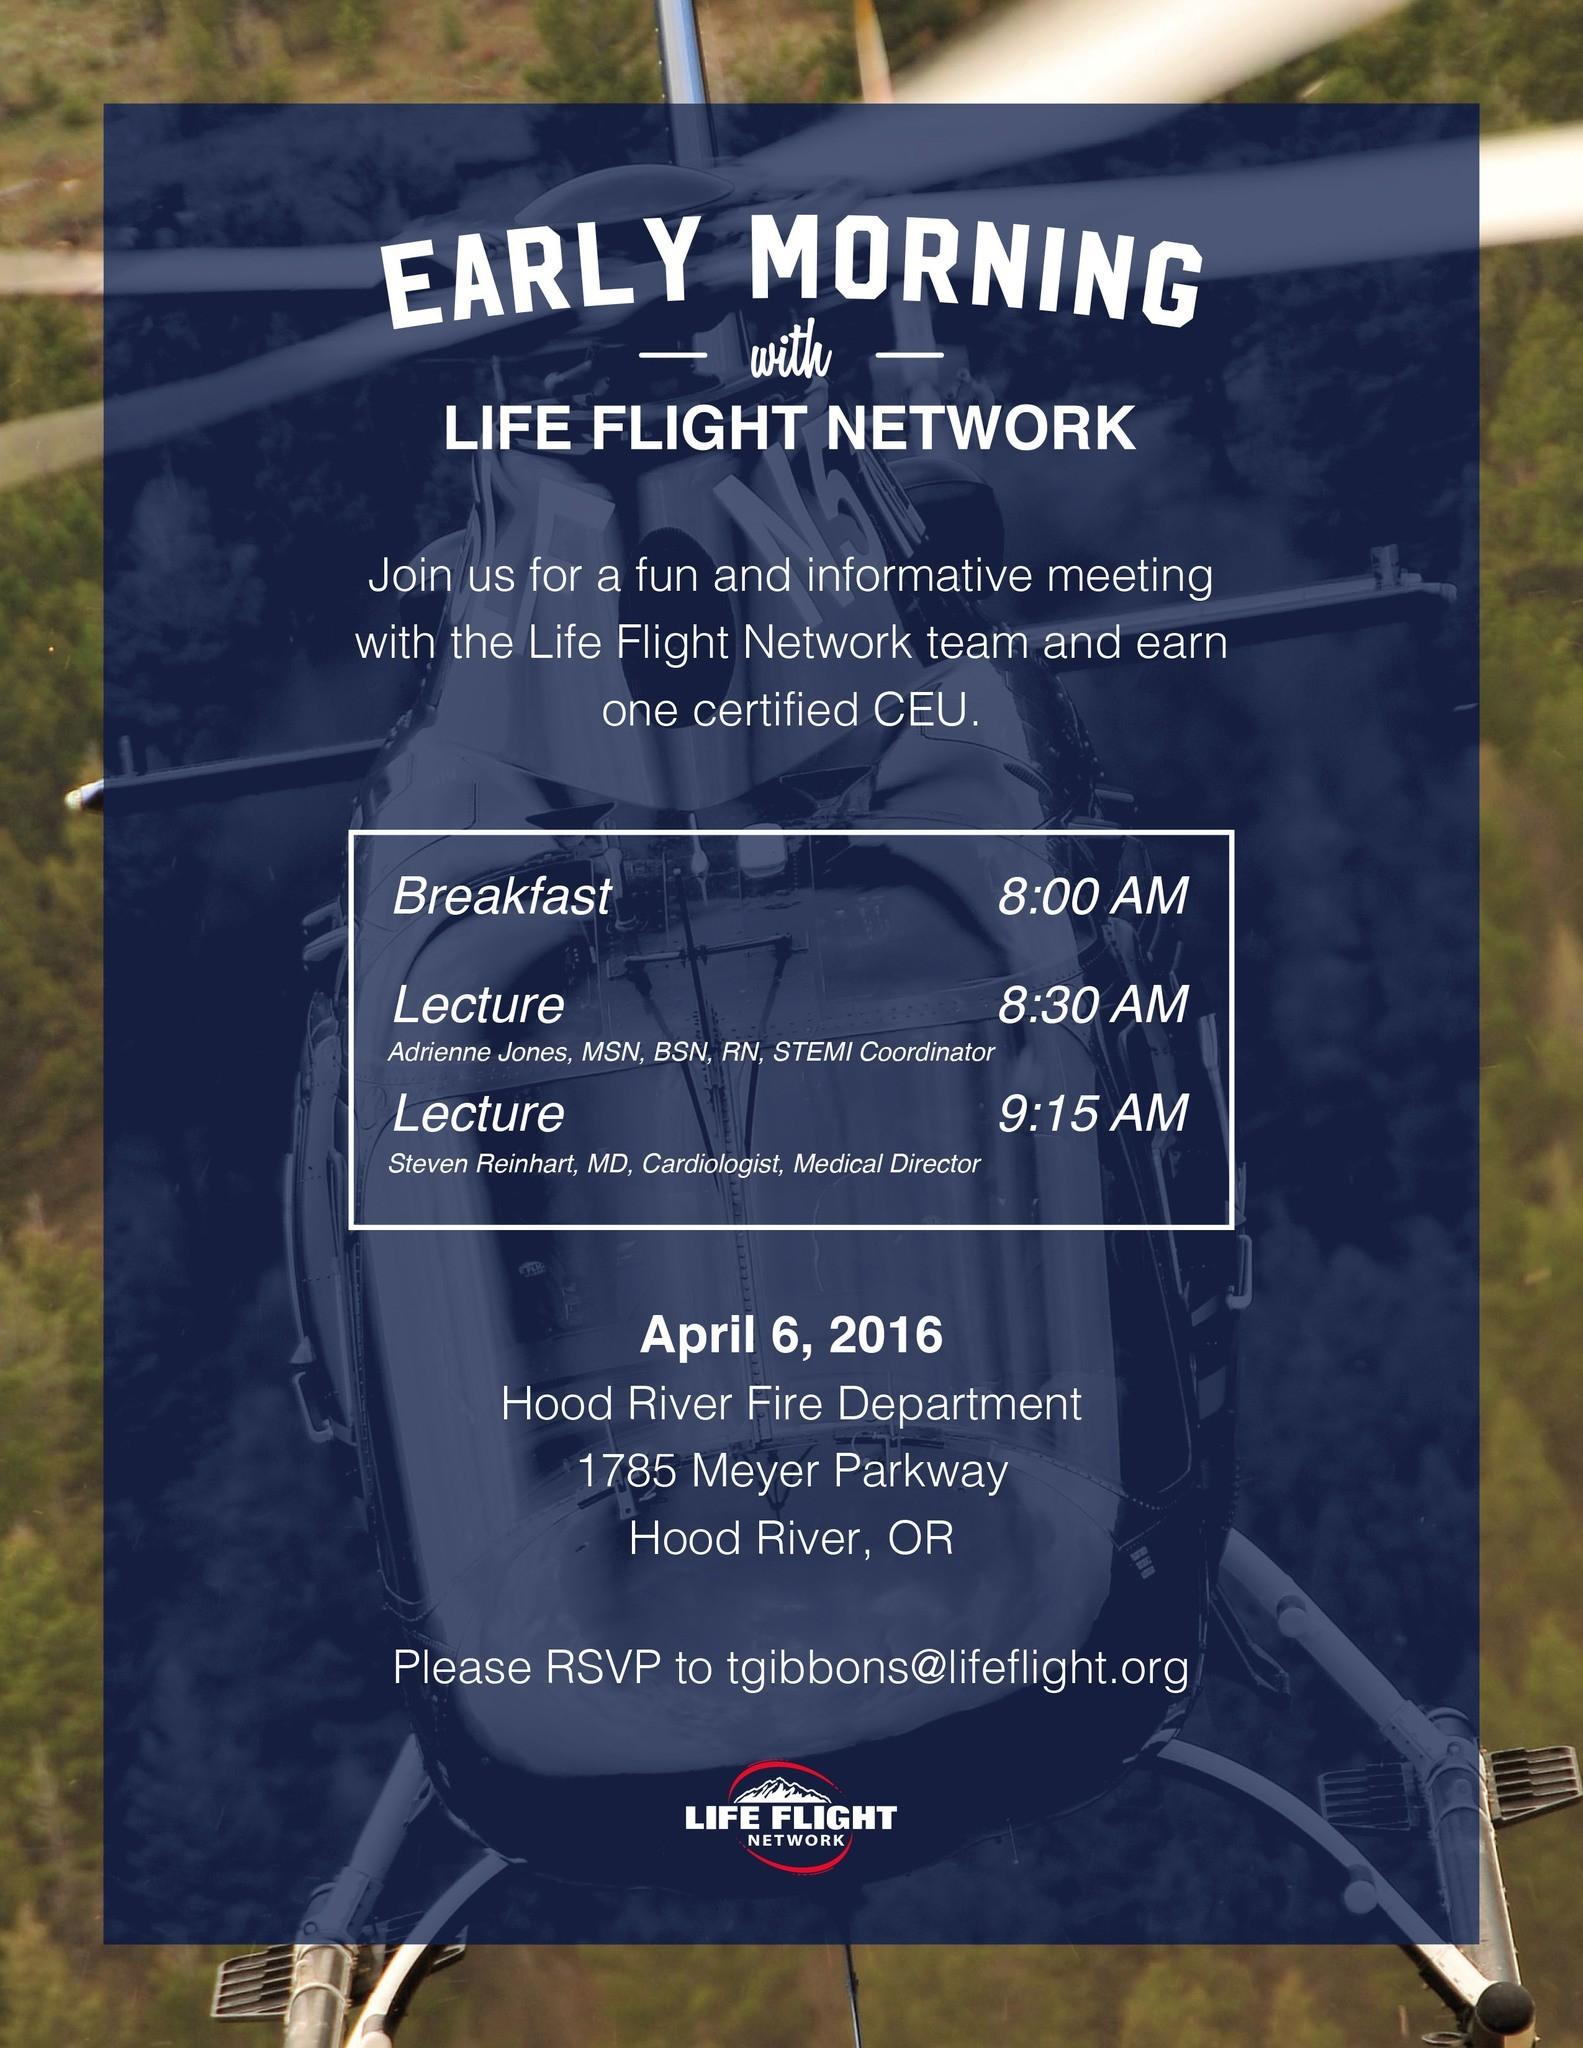 Early Morning with Life Flight Network: Hood River 4/6/16